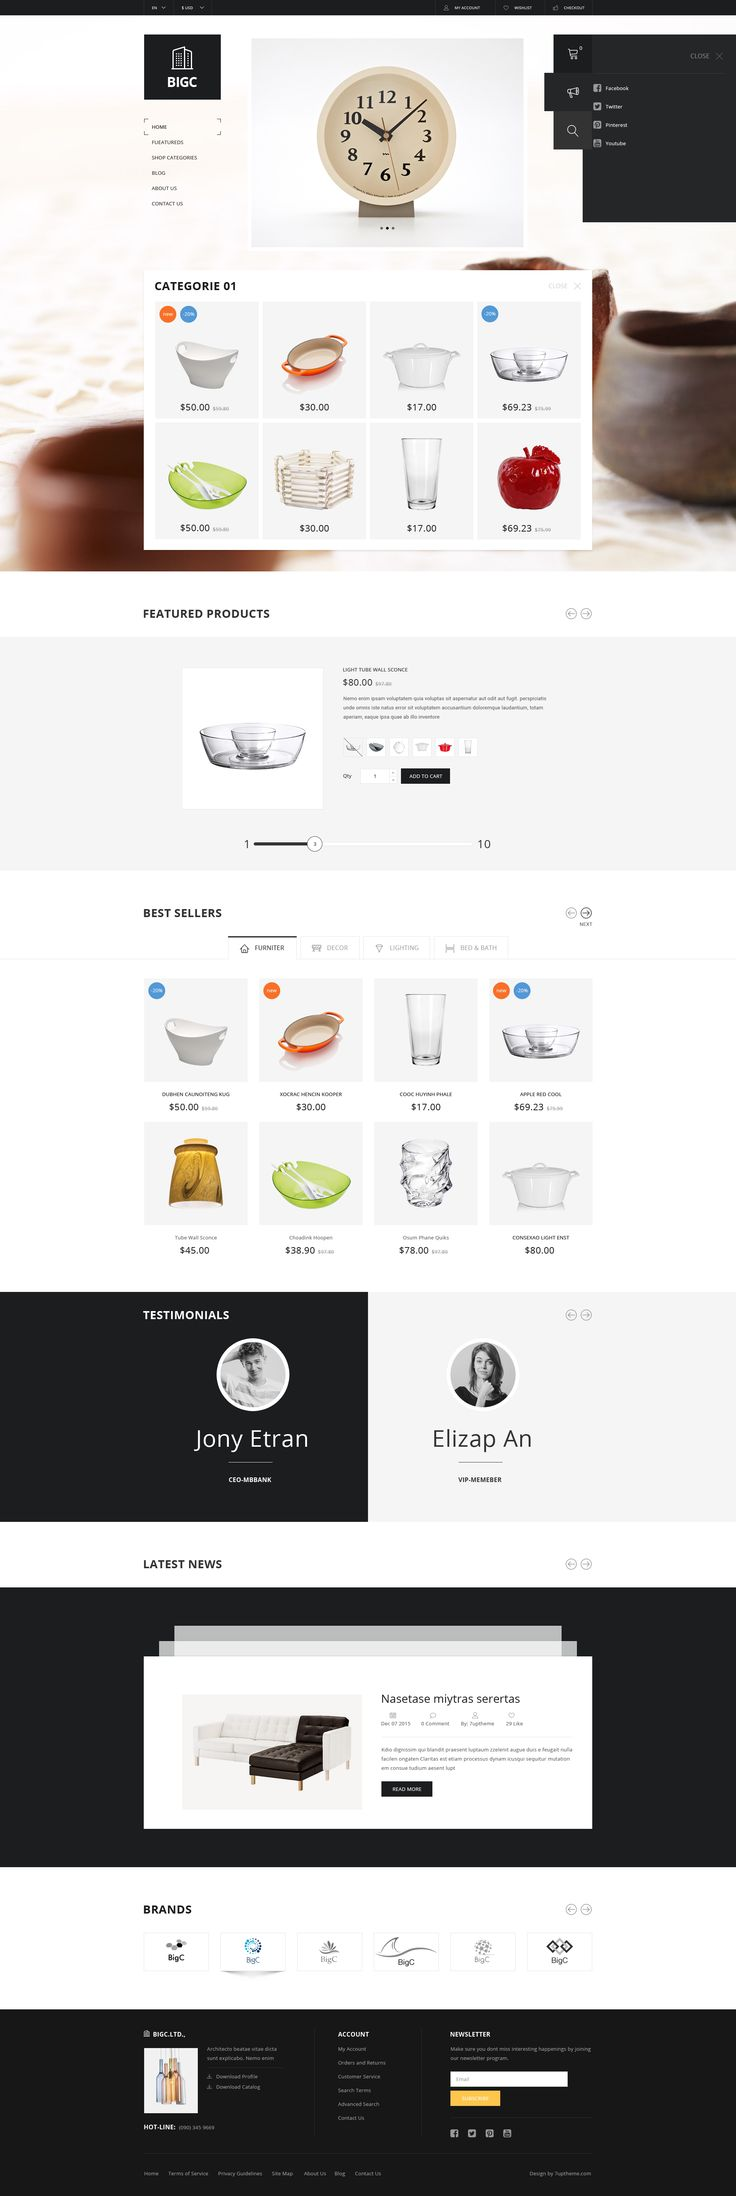 Theme Features 23 layered PSD files. Based on 1200px grid system. Full width: 1920px. 06 page products (Grid products, Listing Products, Detai...